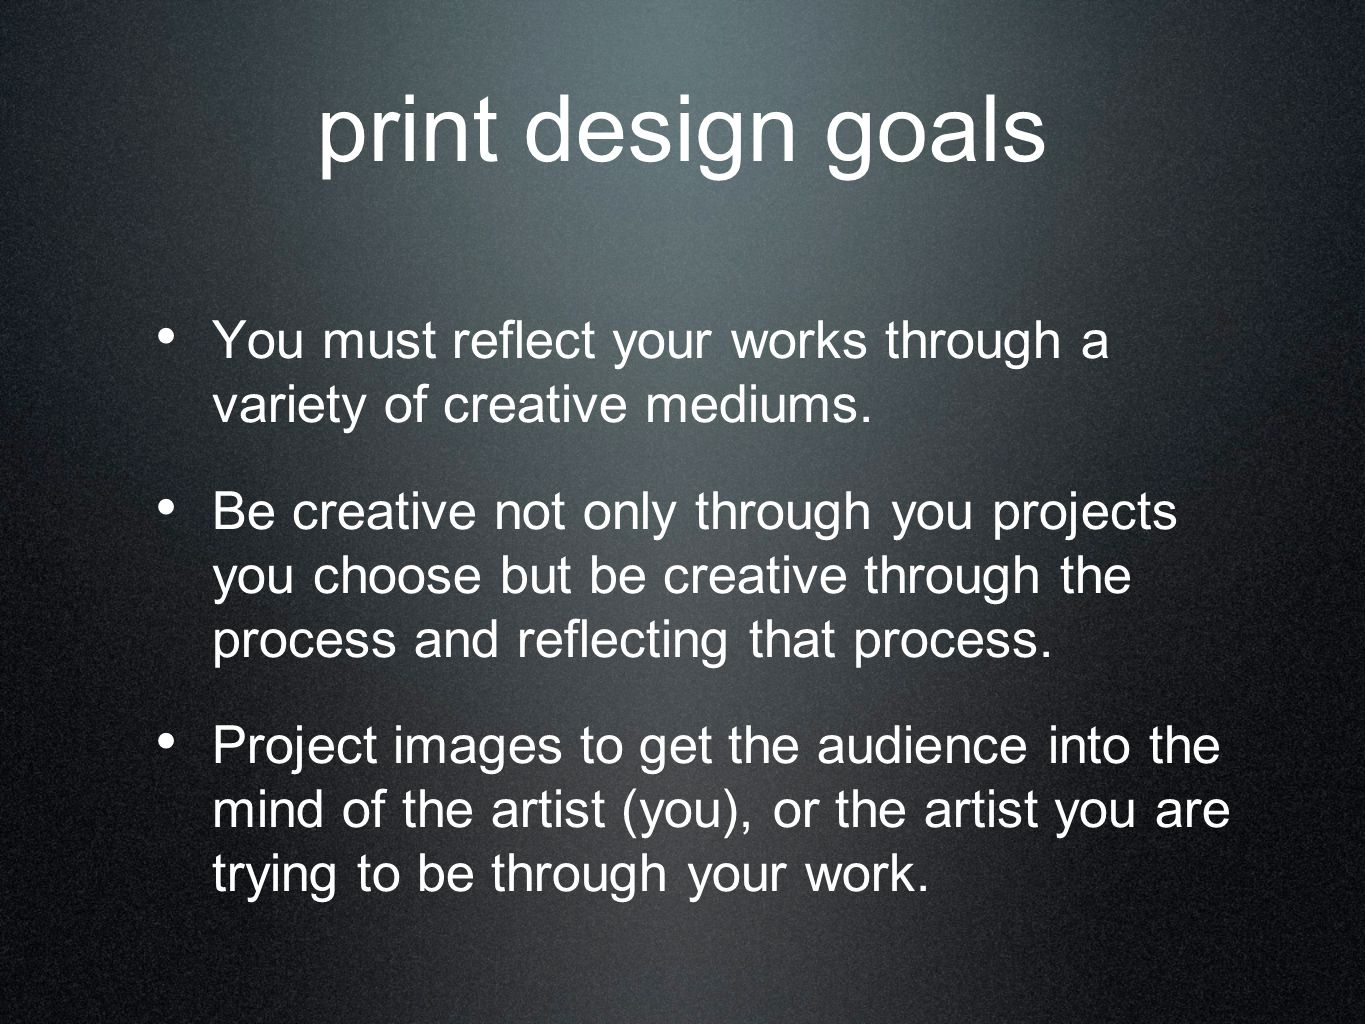 print design goals You must reflect your works through a variety of creative mediums. Be creative not only through you projects you choose but be crea